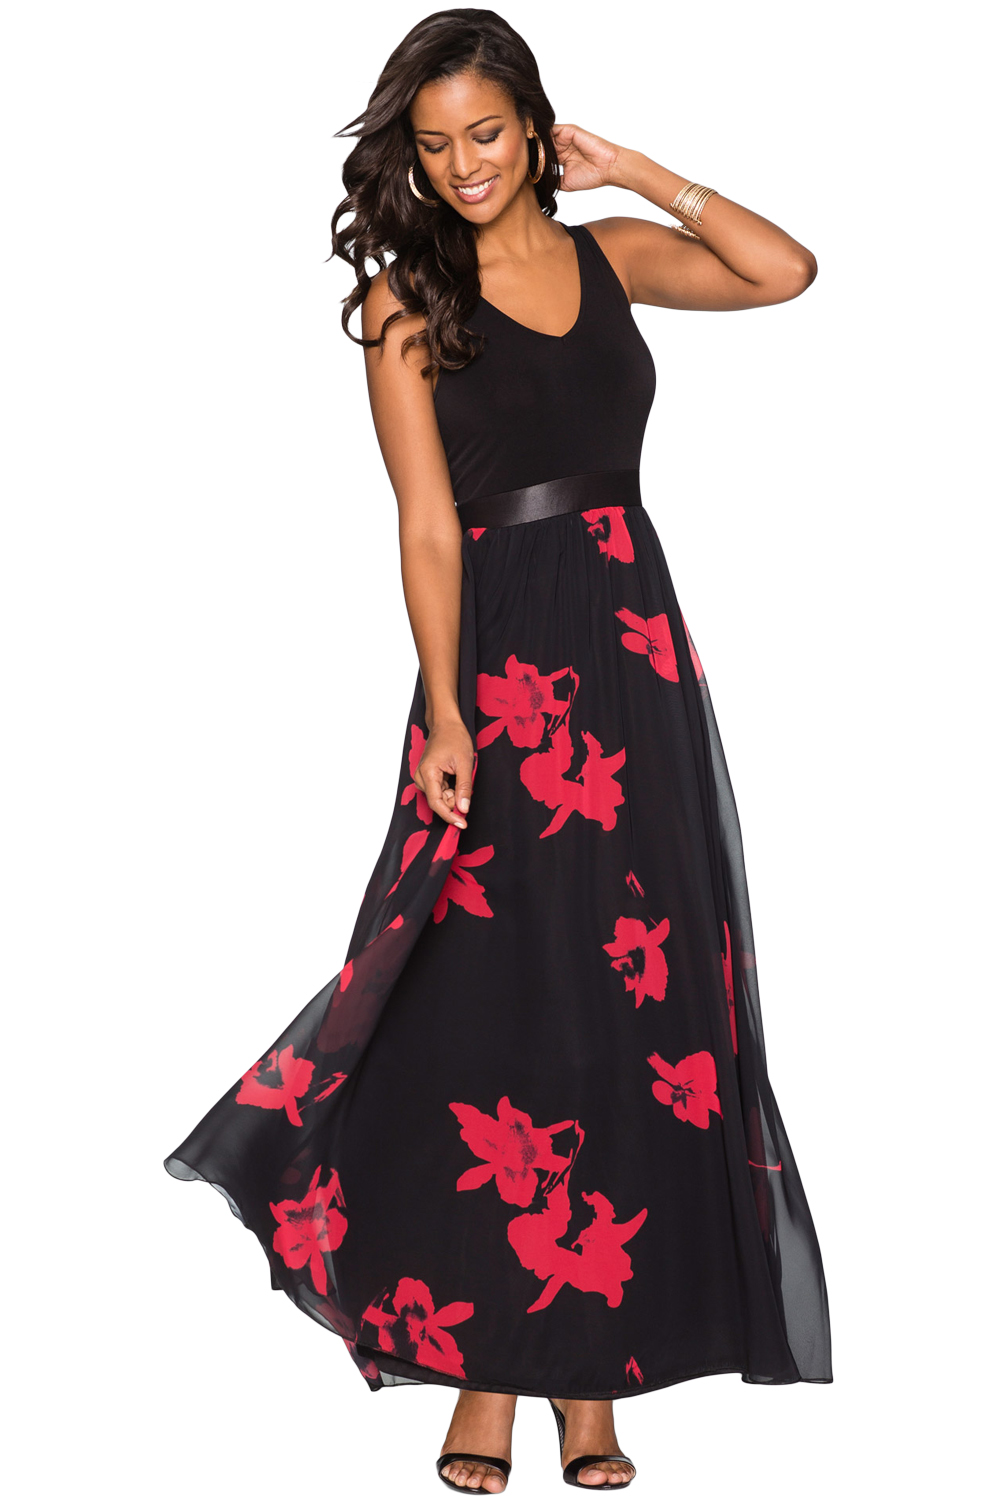 Black & Red Floral Mesh Skirt Sleeveless Maxi Dress